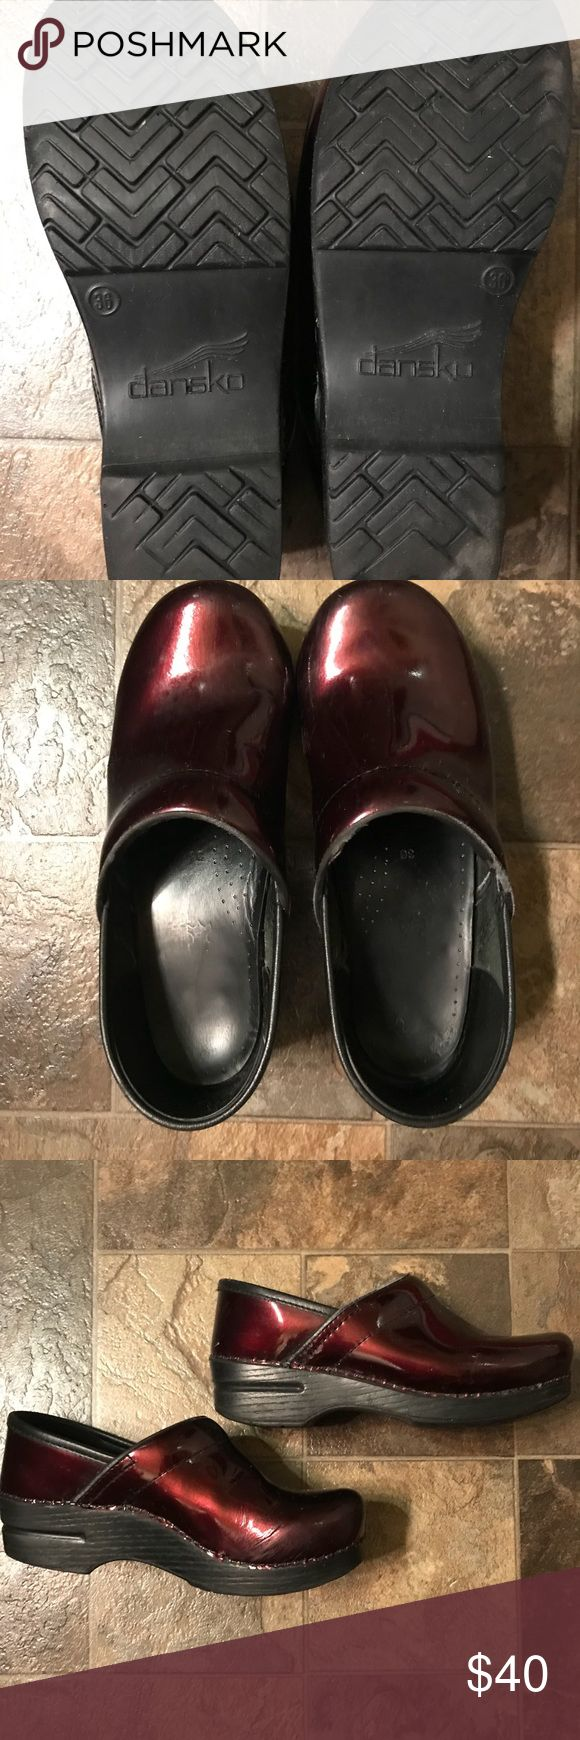 Red Dansko Clogs. Size 36. Red Dansko Clogs. Size 36. Good condition. Normal wear and tear. Dansko Shoes Mules & Clogs